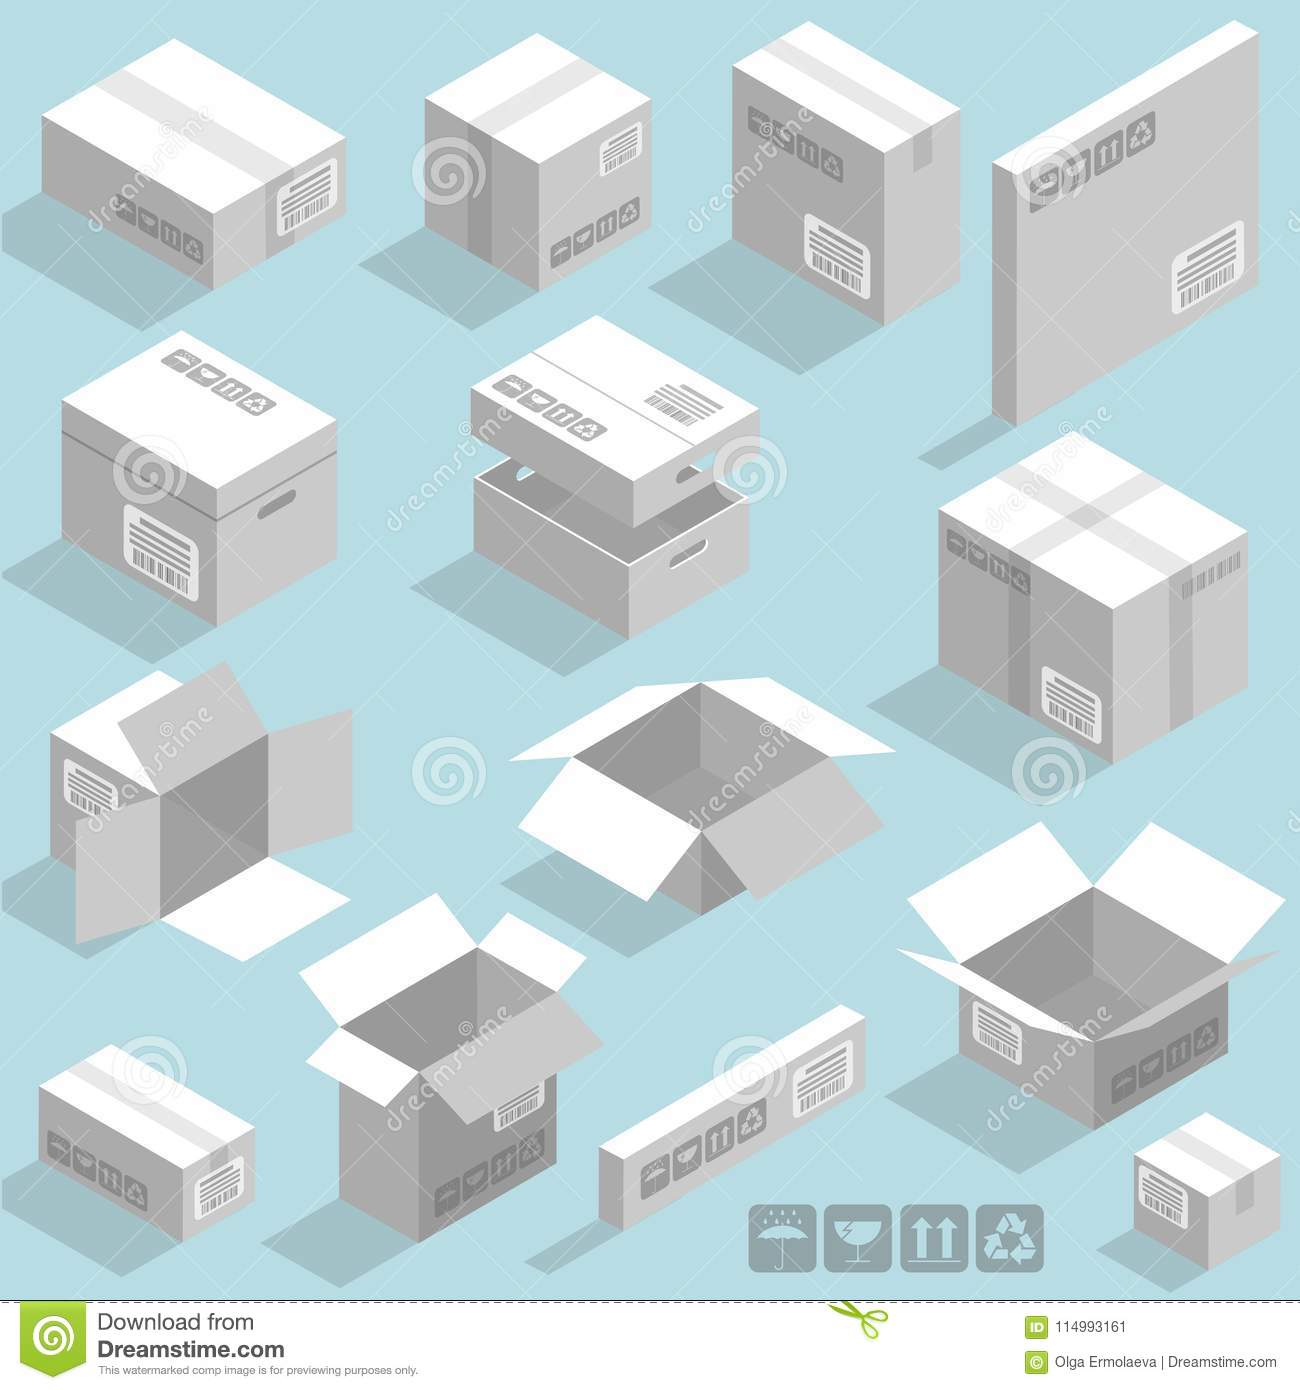 Isometric Vector Cardboard Boxes Stock Vector - Illustration of ...